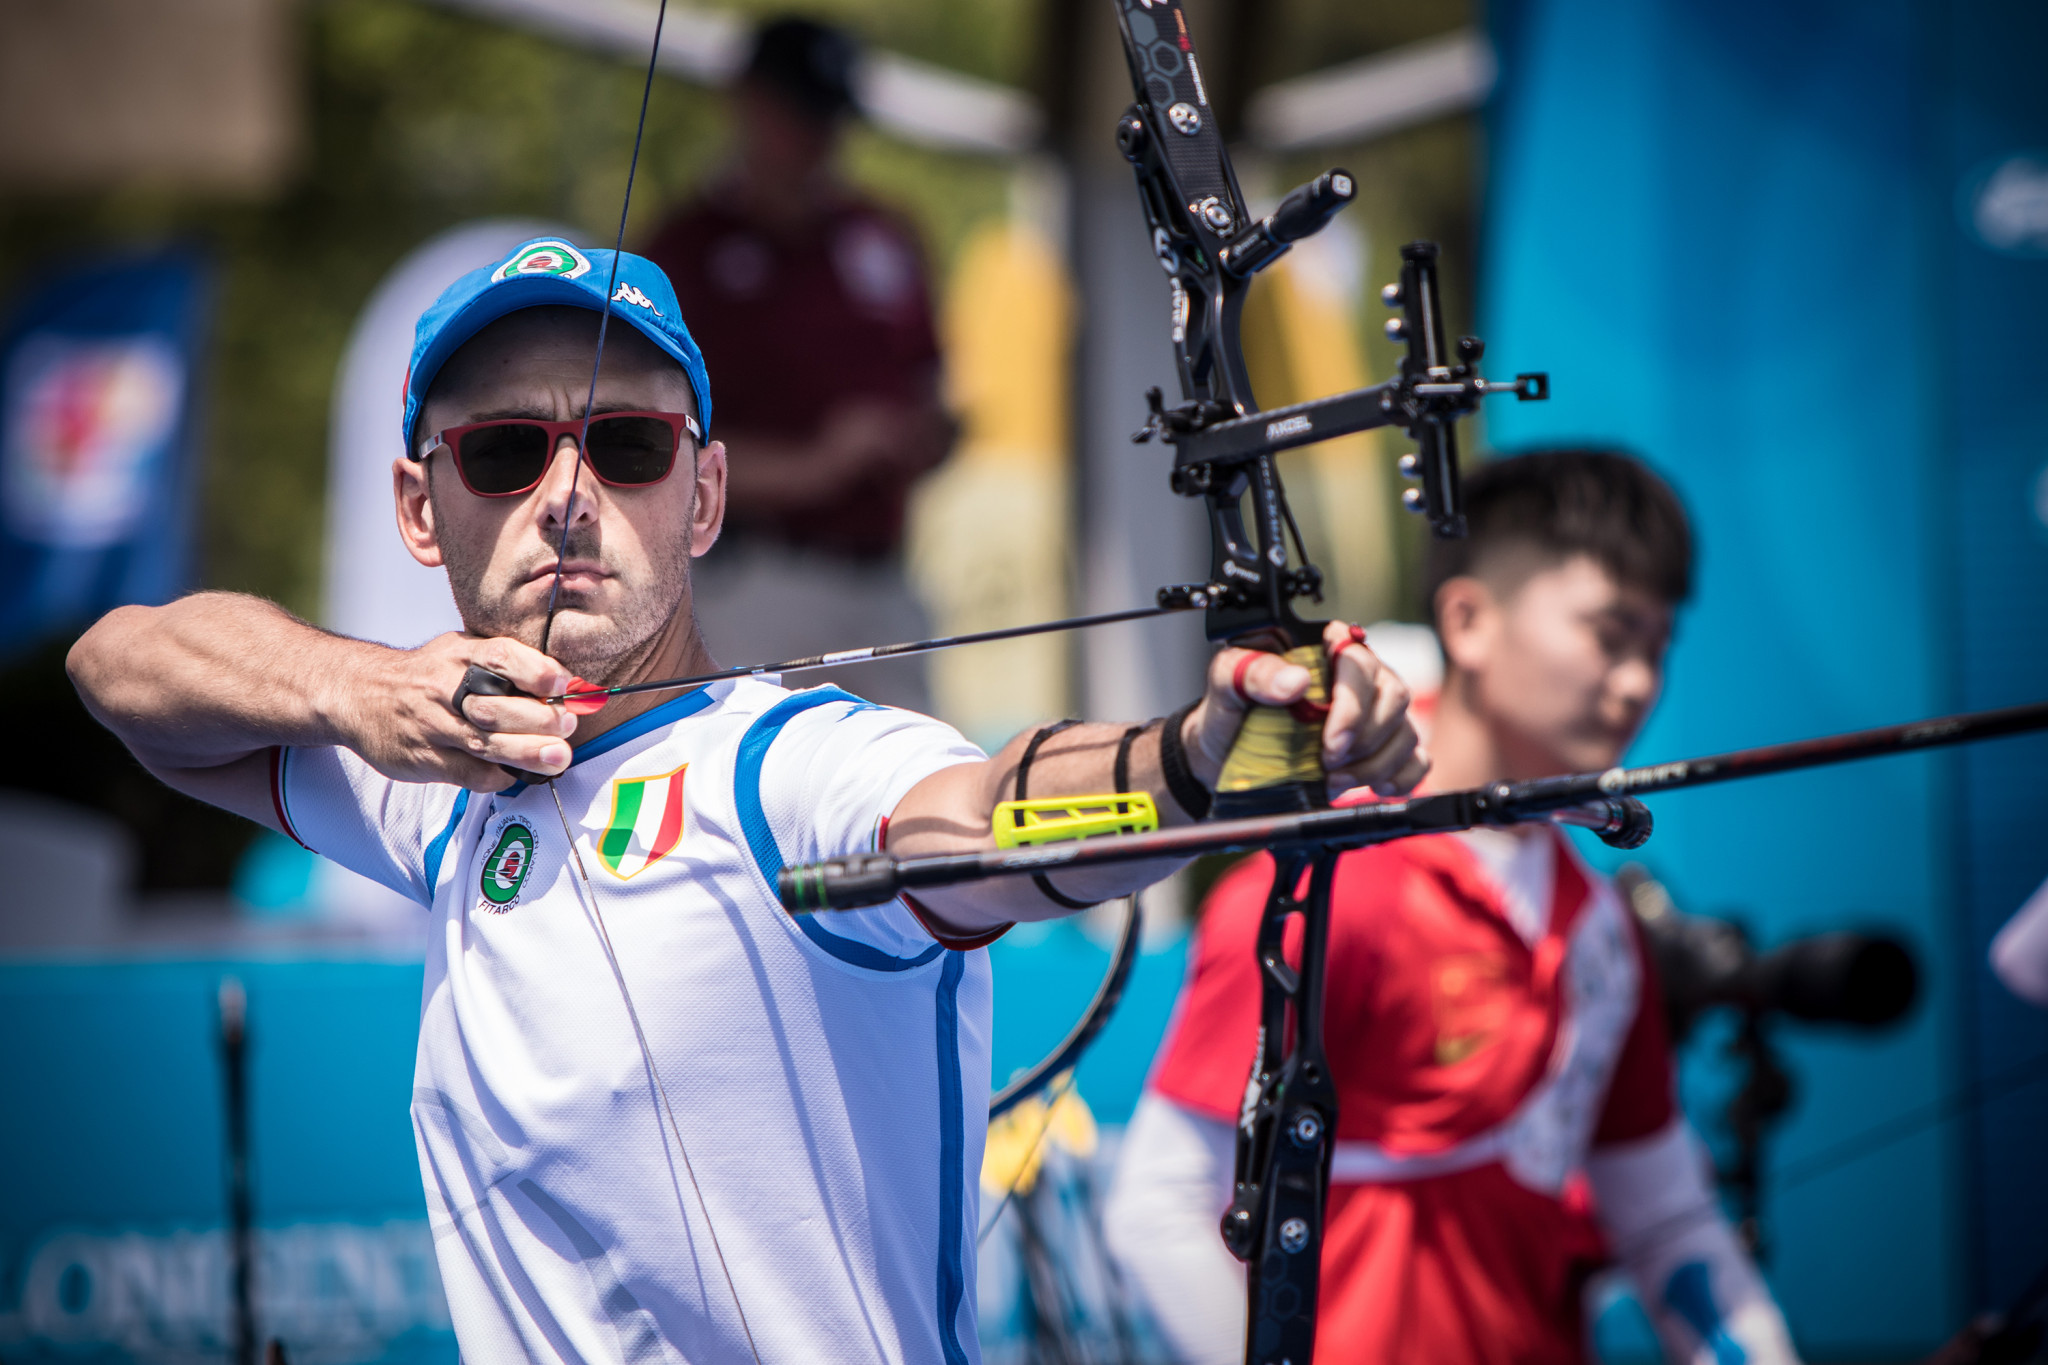 Paris set to stage final archery qualifier for Tokyo 2020 Olympics